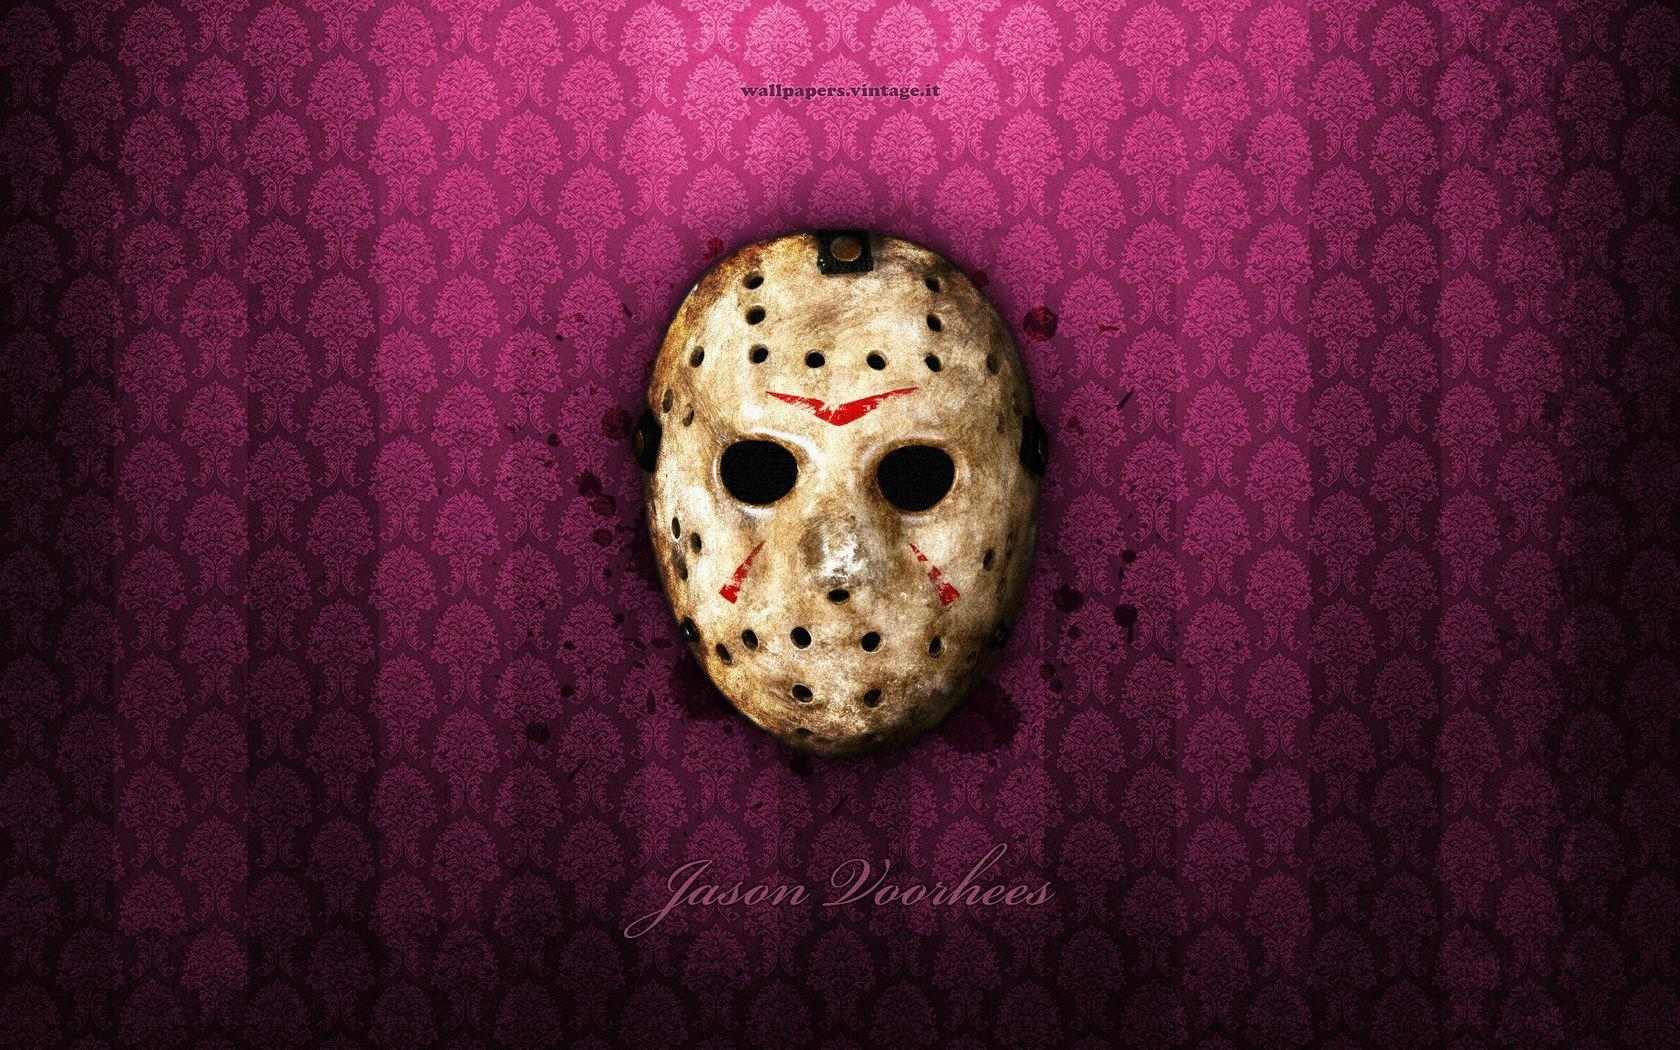 Friday the 13th vintage wallpaper - Free Desktop HD iPad iPhone ...